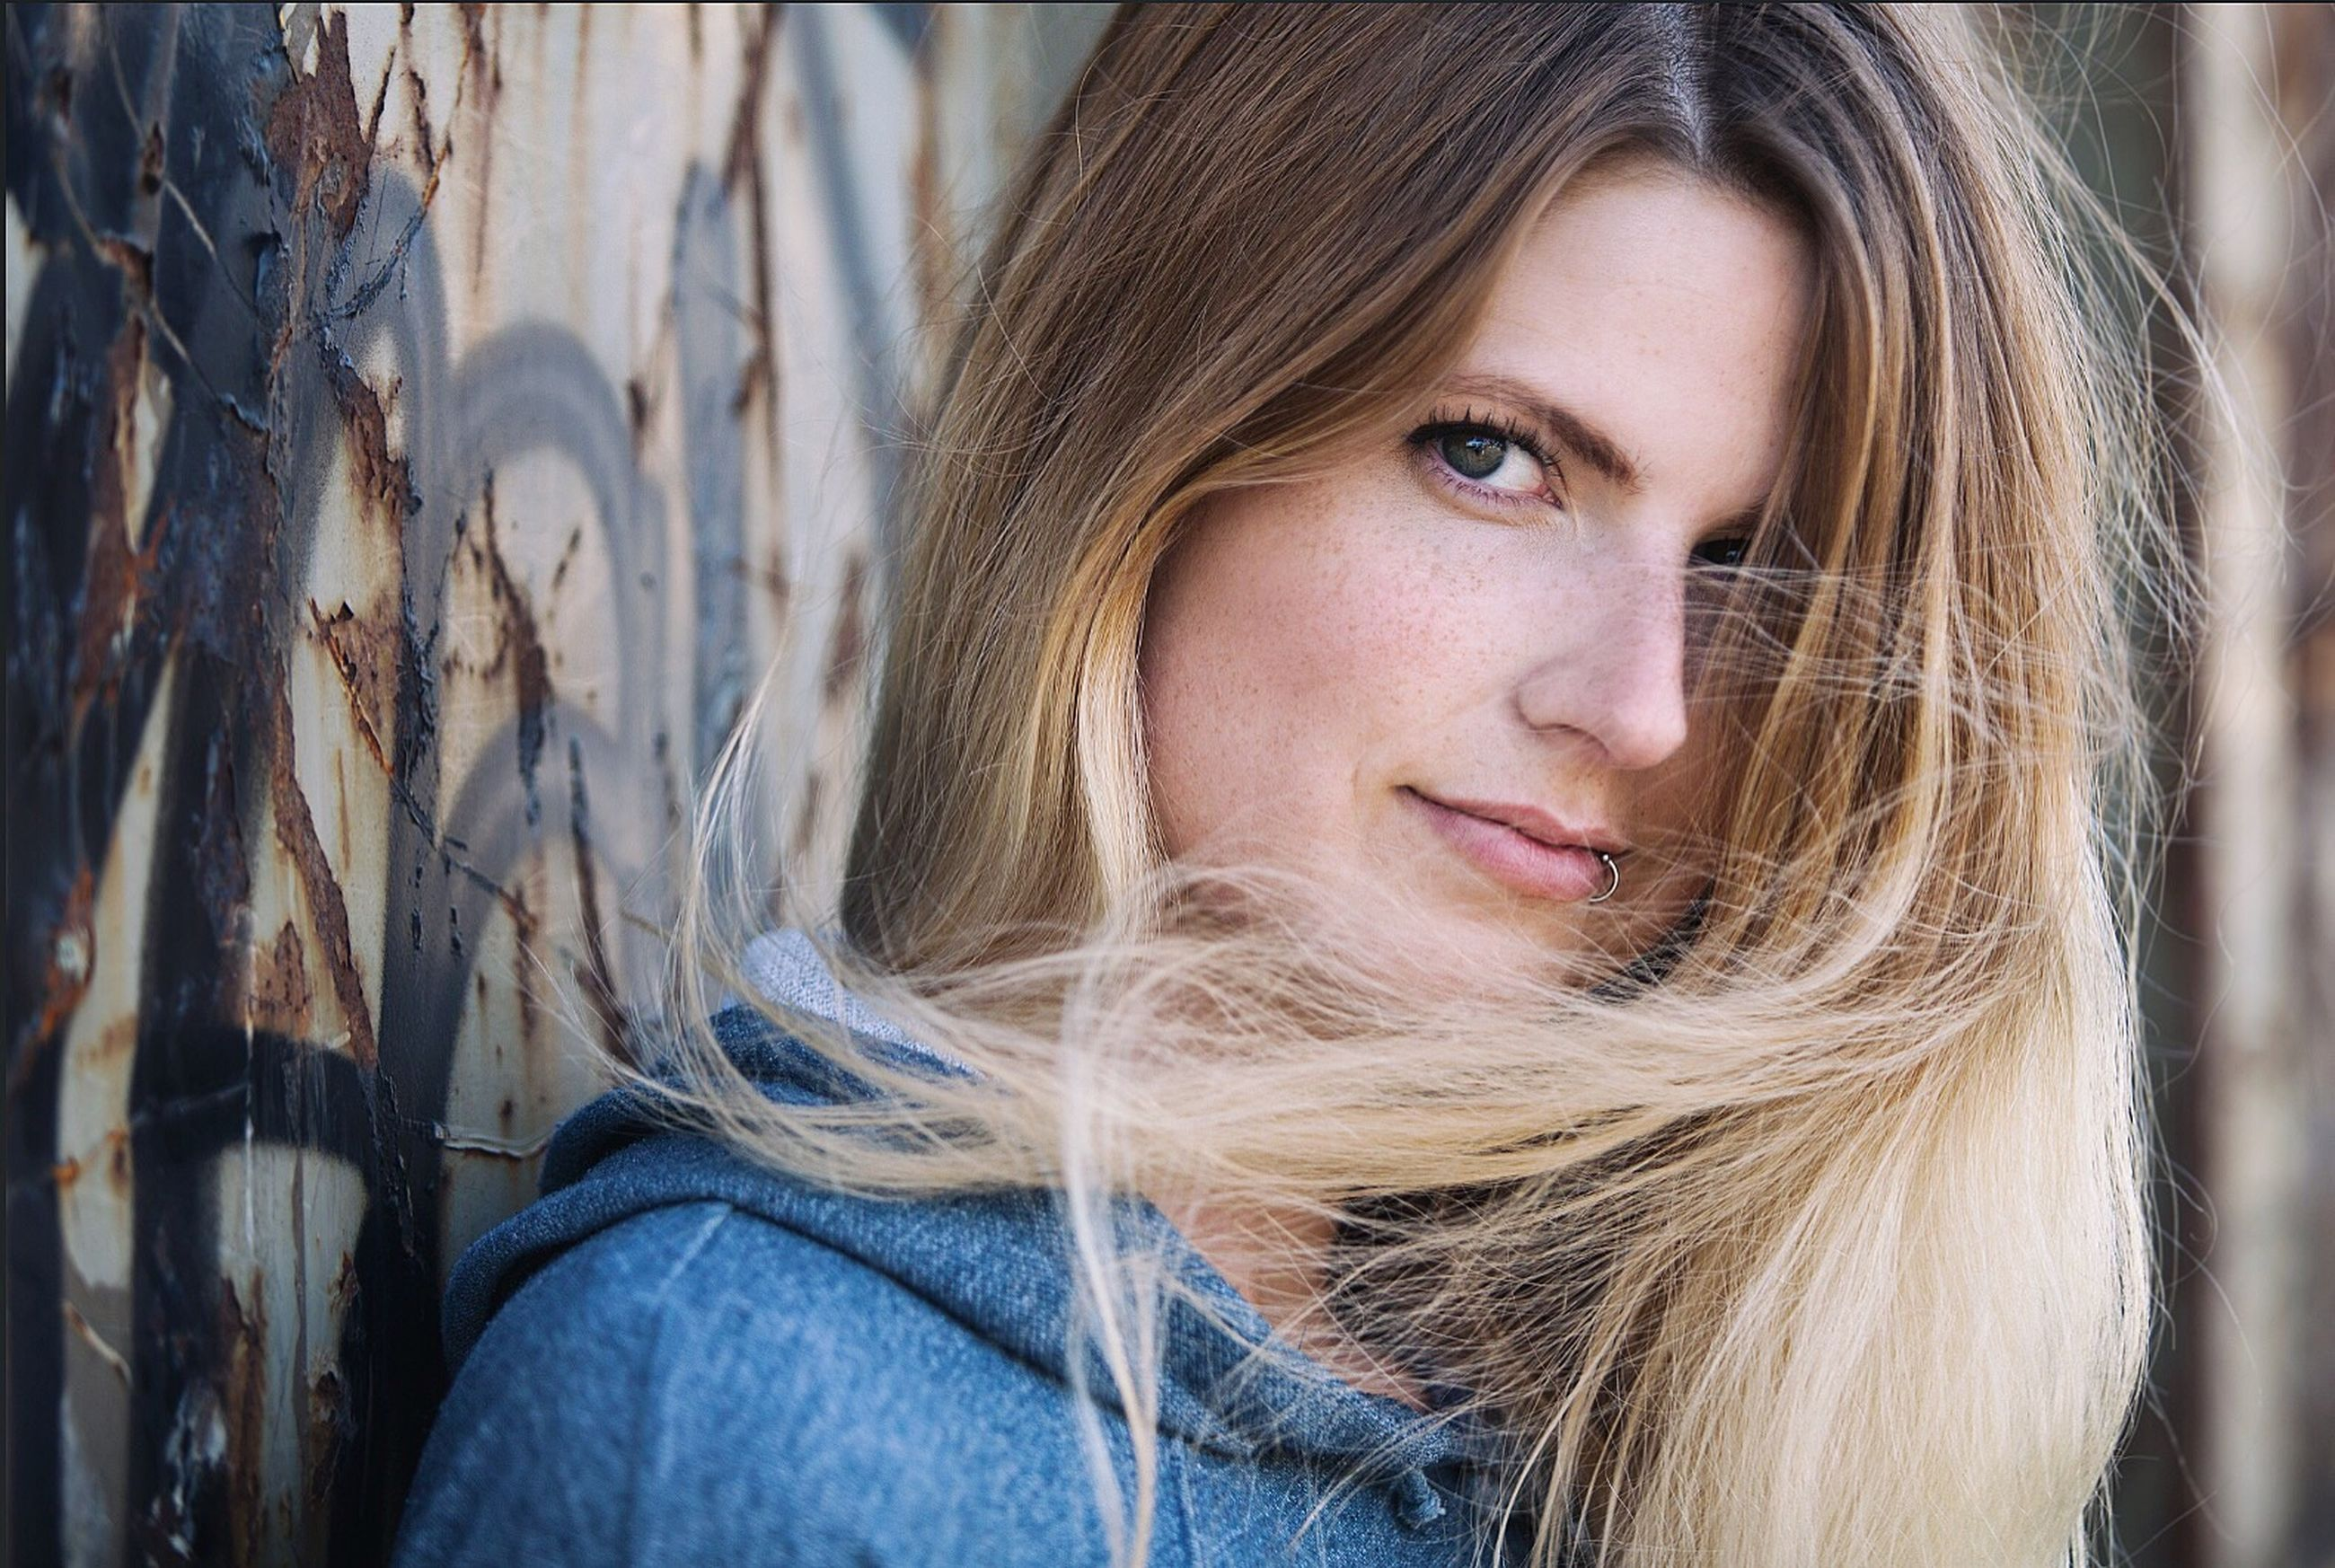 headshot, portrait, one person, long hair, looking at camera, only women, beauty, beautiful woman, blond hair, beautiful people, young women, leisure activity, people, one woman only, close-up, young adult, adult, day, adults only, warm clothing, outdoors, one young woman only